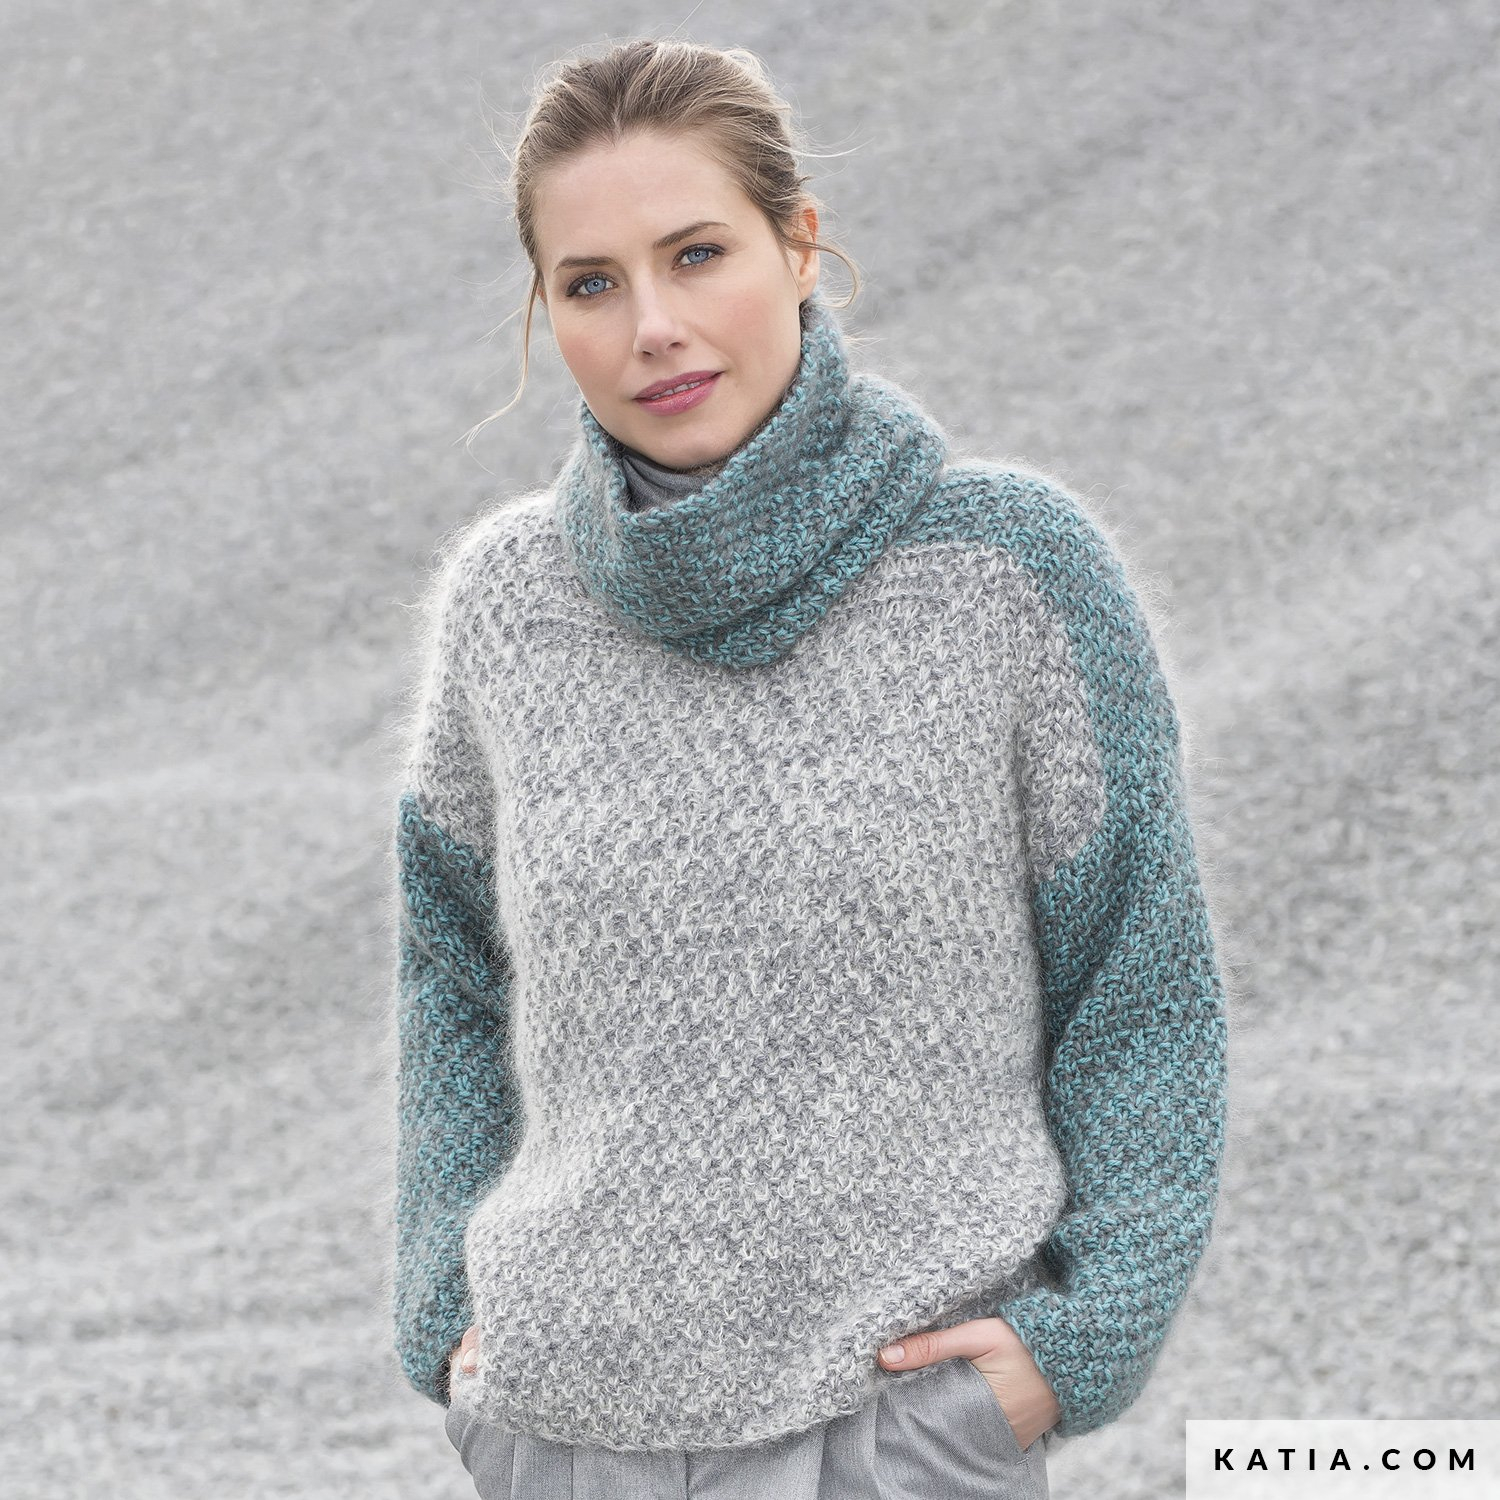 Knit Jumper Pattern Sweater Woman Autumn Winter Models Patterns Katia